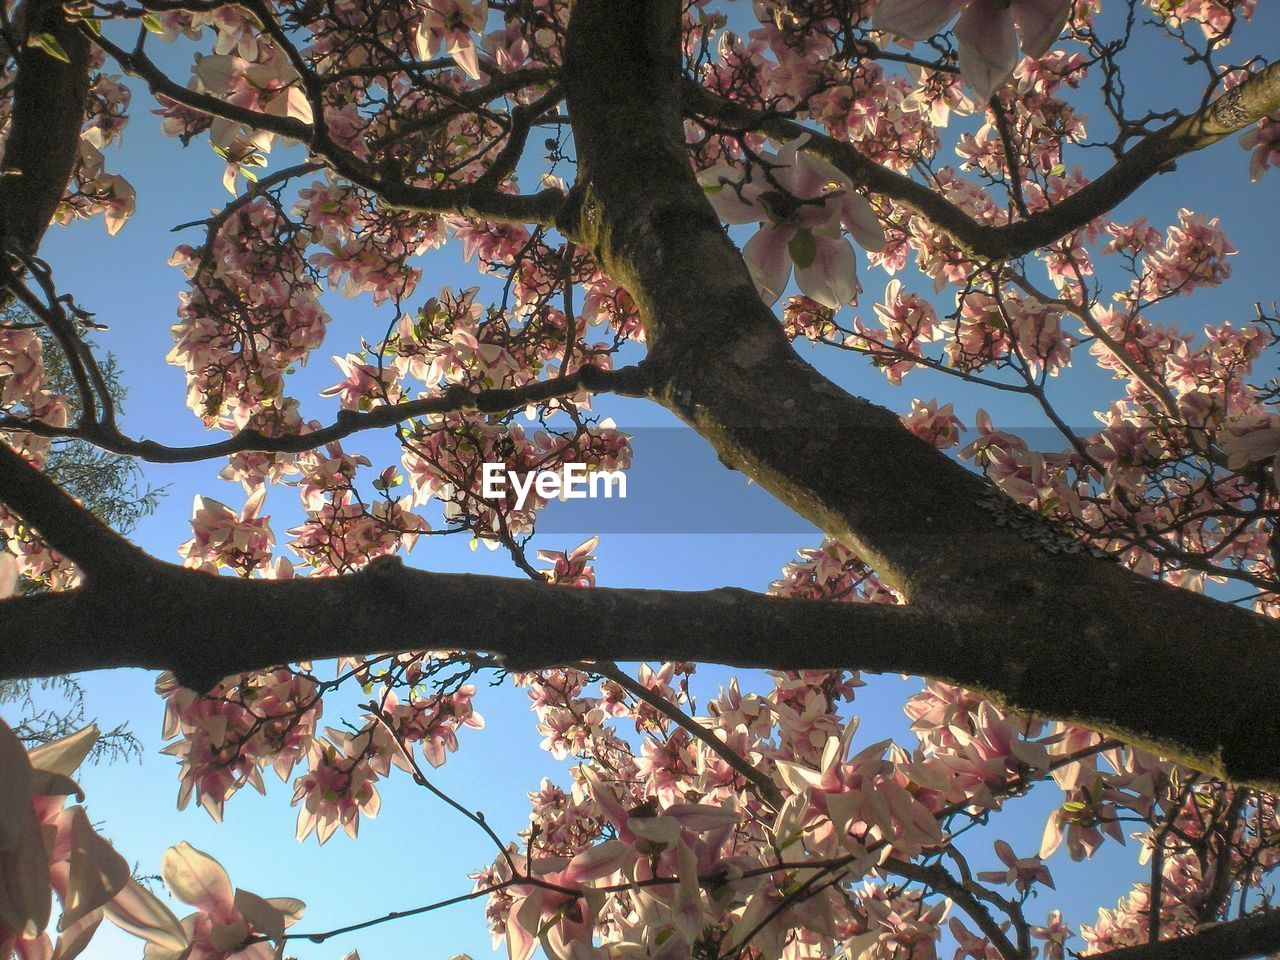 tree, plant, branch, low angle view, beauty in nature, growth, sky, nature, day, flowering plant, no people, outdoors, flower, springtime, blossom, sunlight, leaf, tranquility, plant part, autumn, cherry blossom, cherry tree, spring